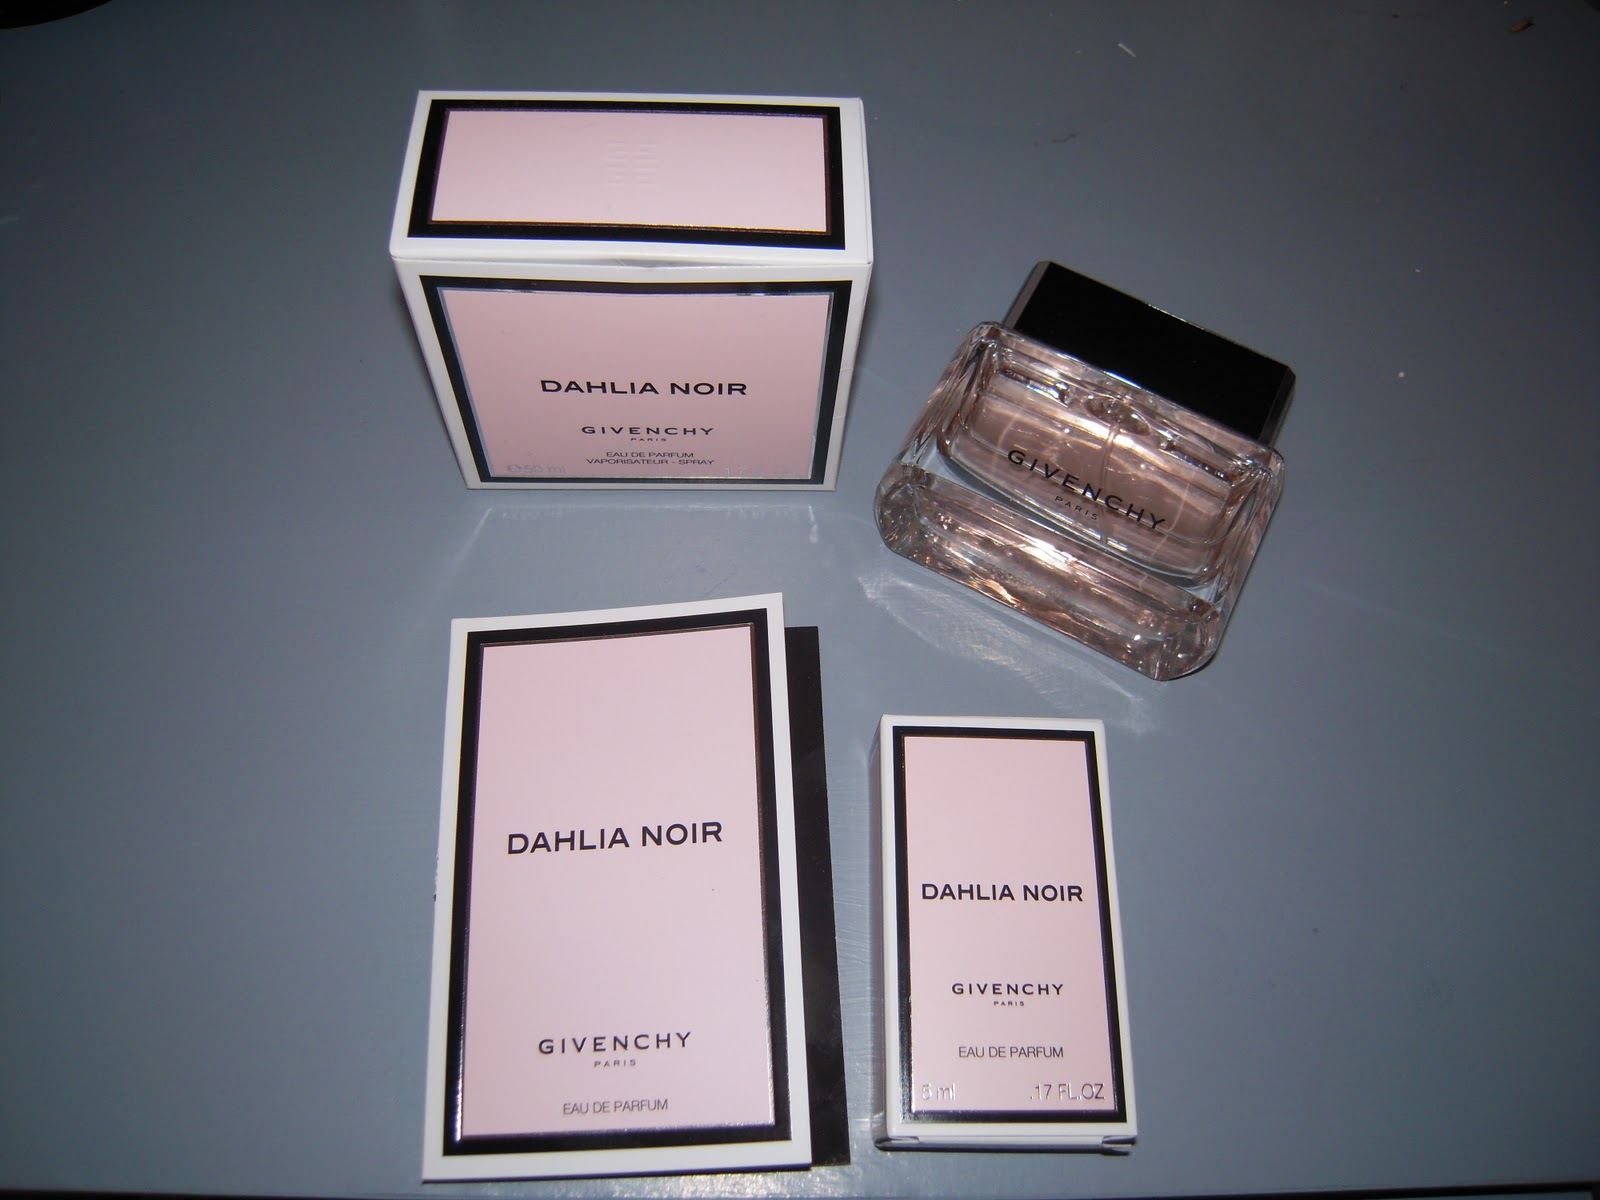 Little Givenchy Noir Life The Crazy De Parfum Of FlowerDahlia k8nO0Pw